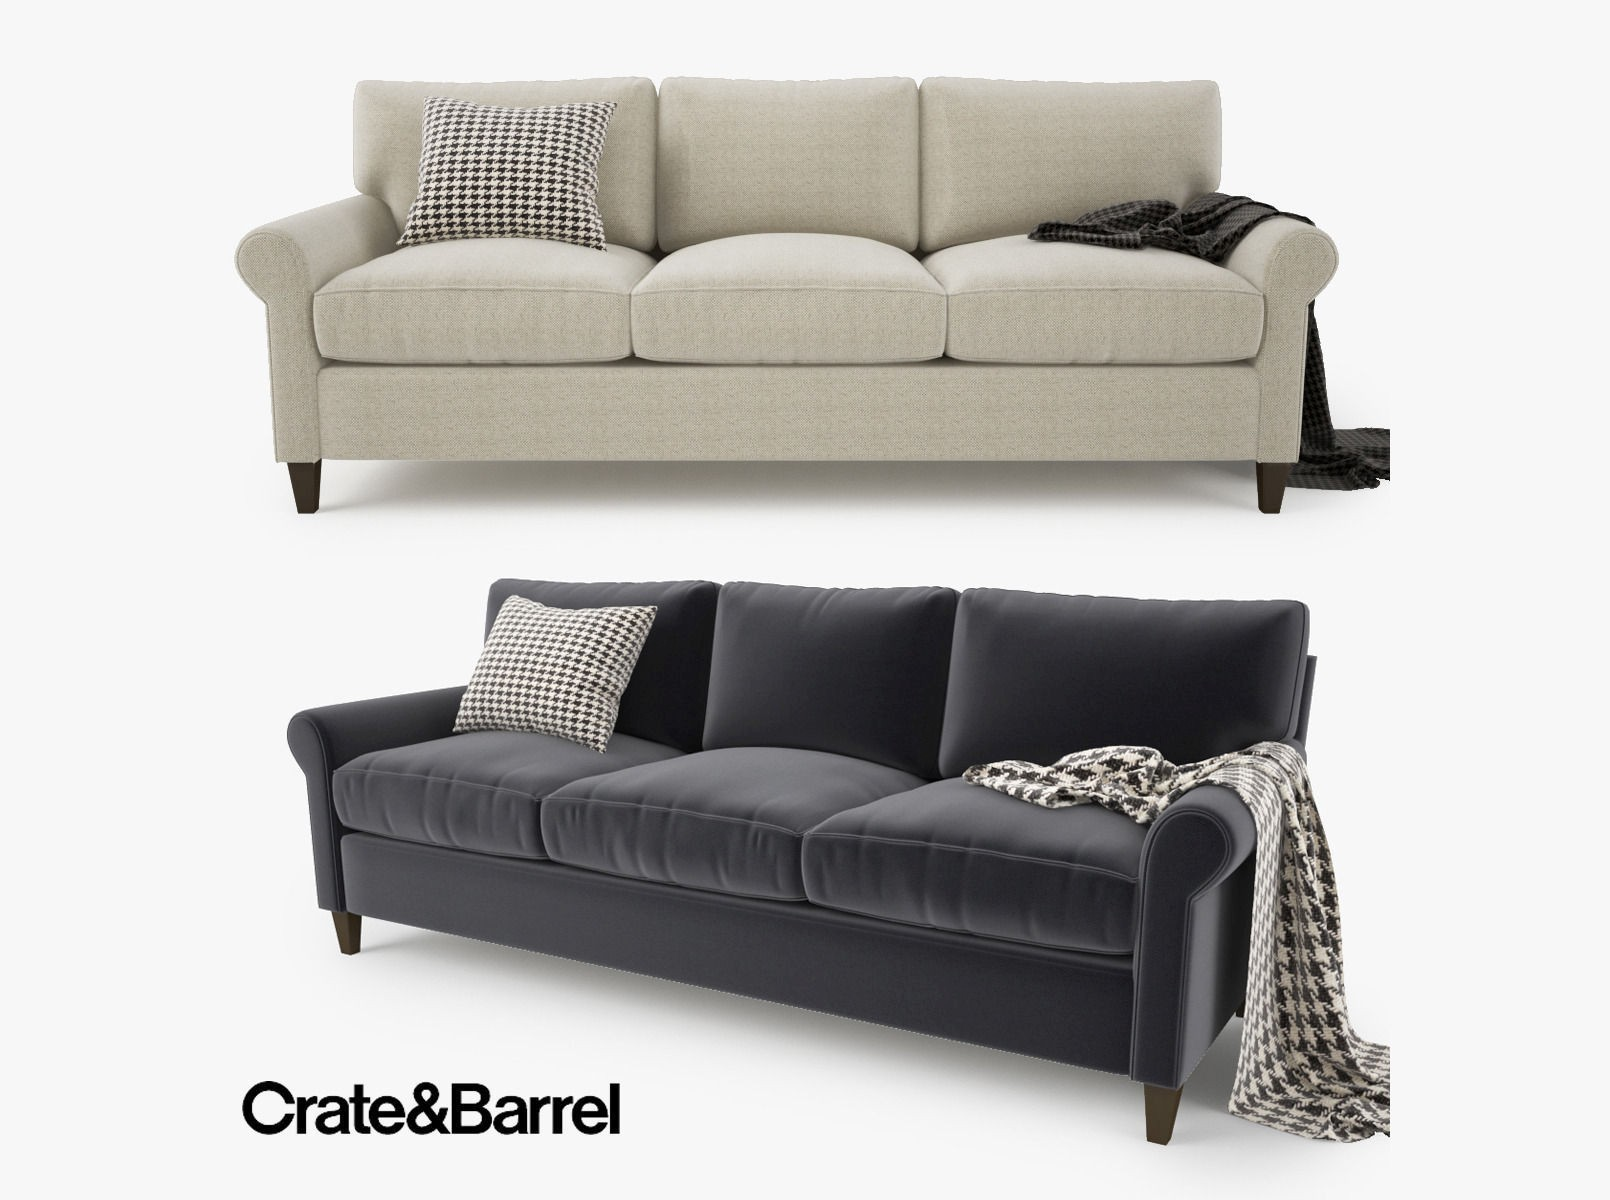 Crate and Barrel sofas New Crate and Barrel Montclair 3 Seat sofa 3d Photo